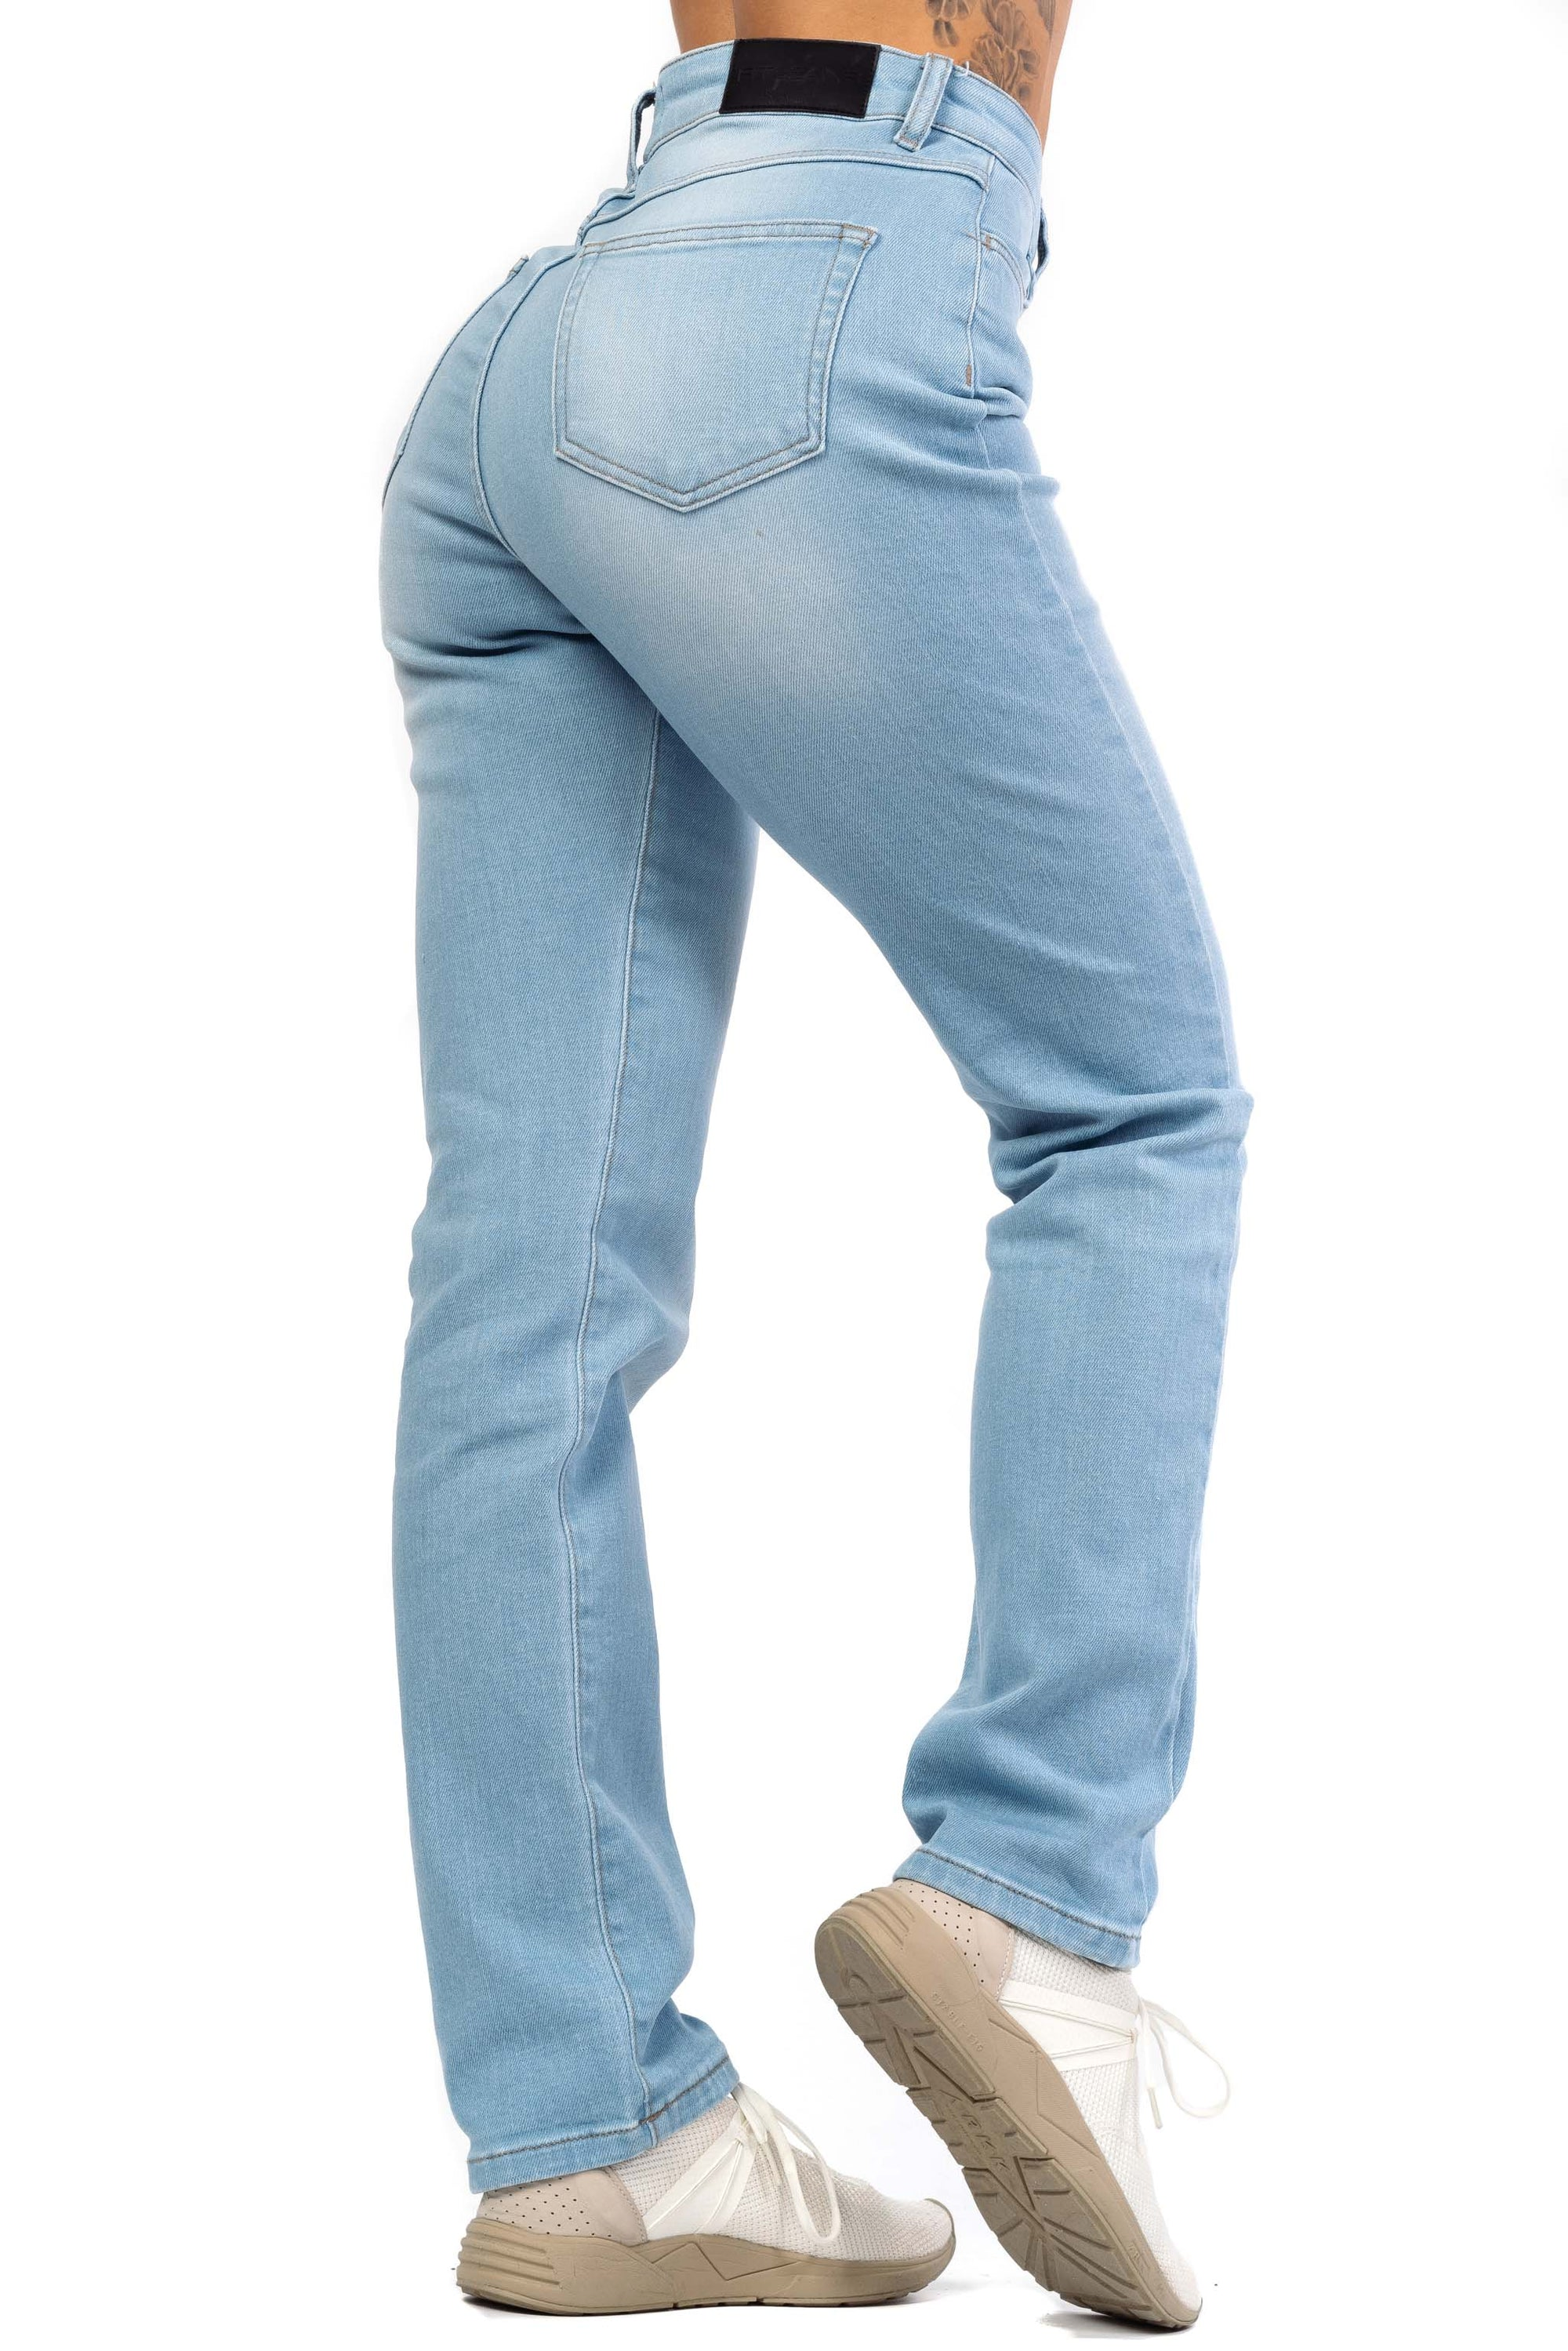 Womens High Waisted Mom Fitjeans - Vintage Blue